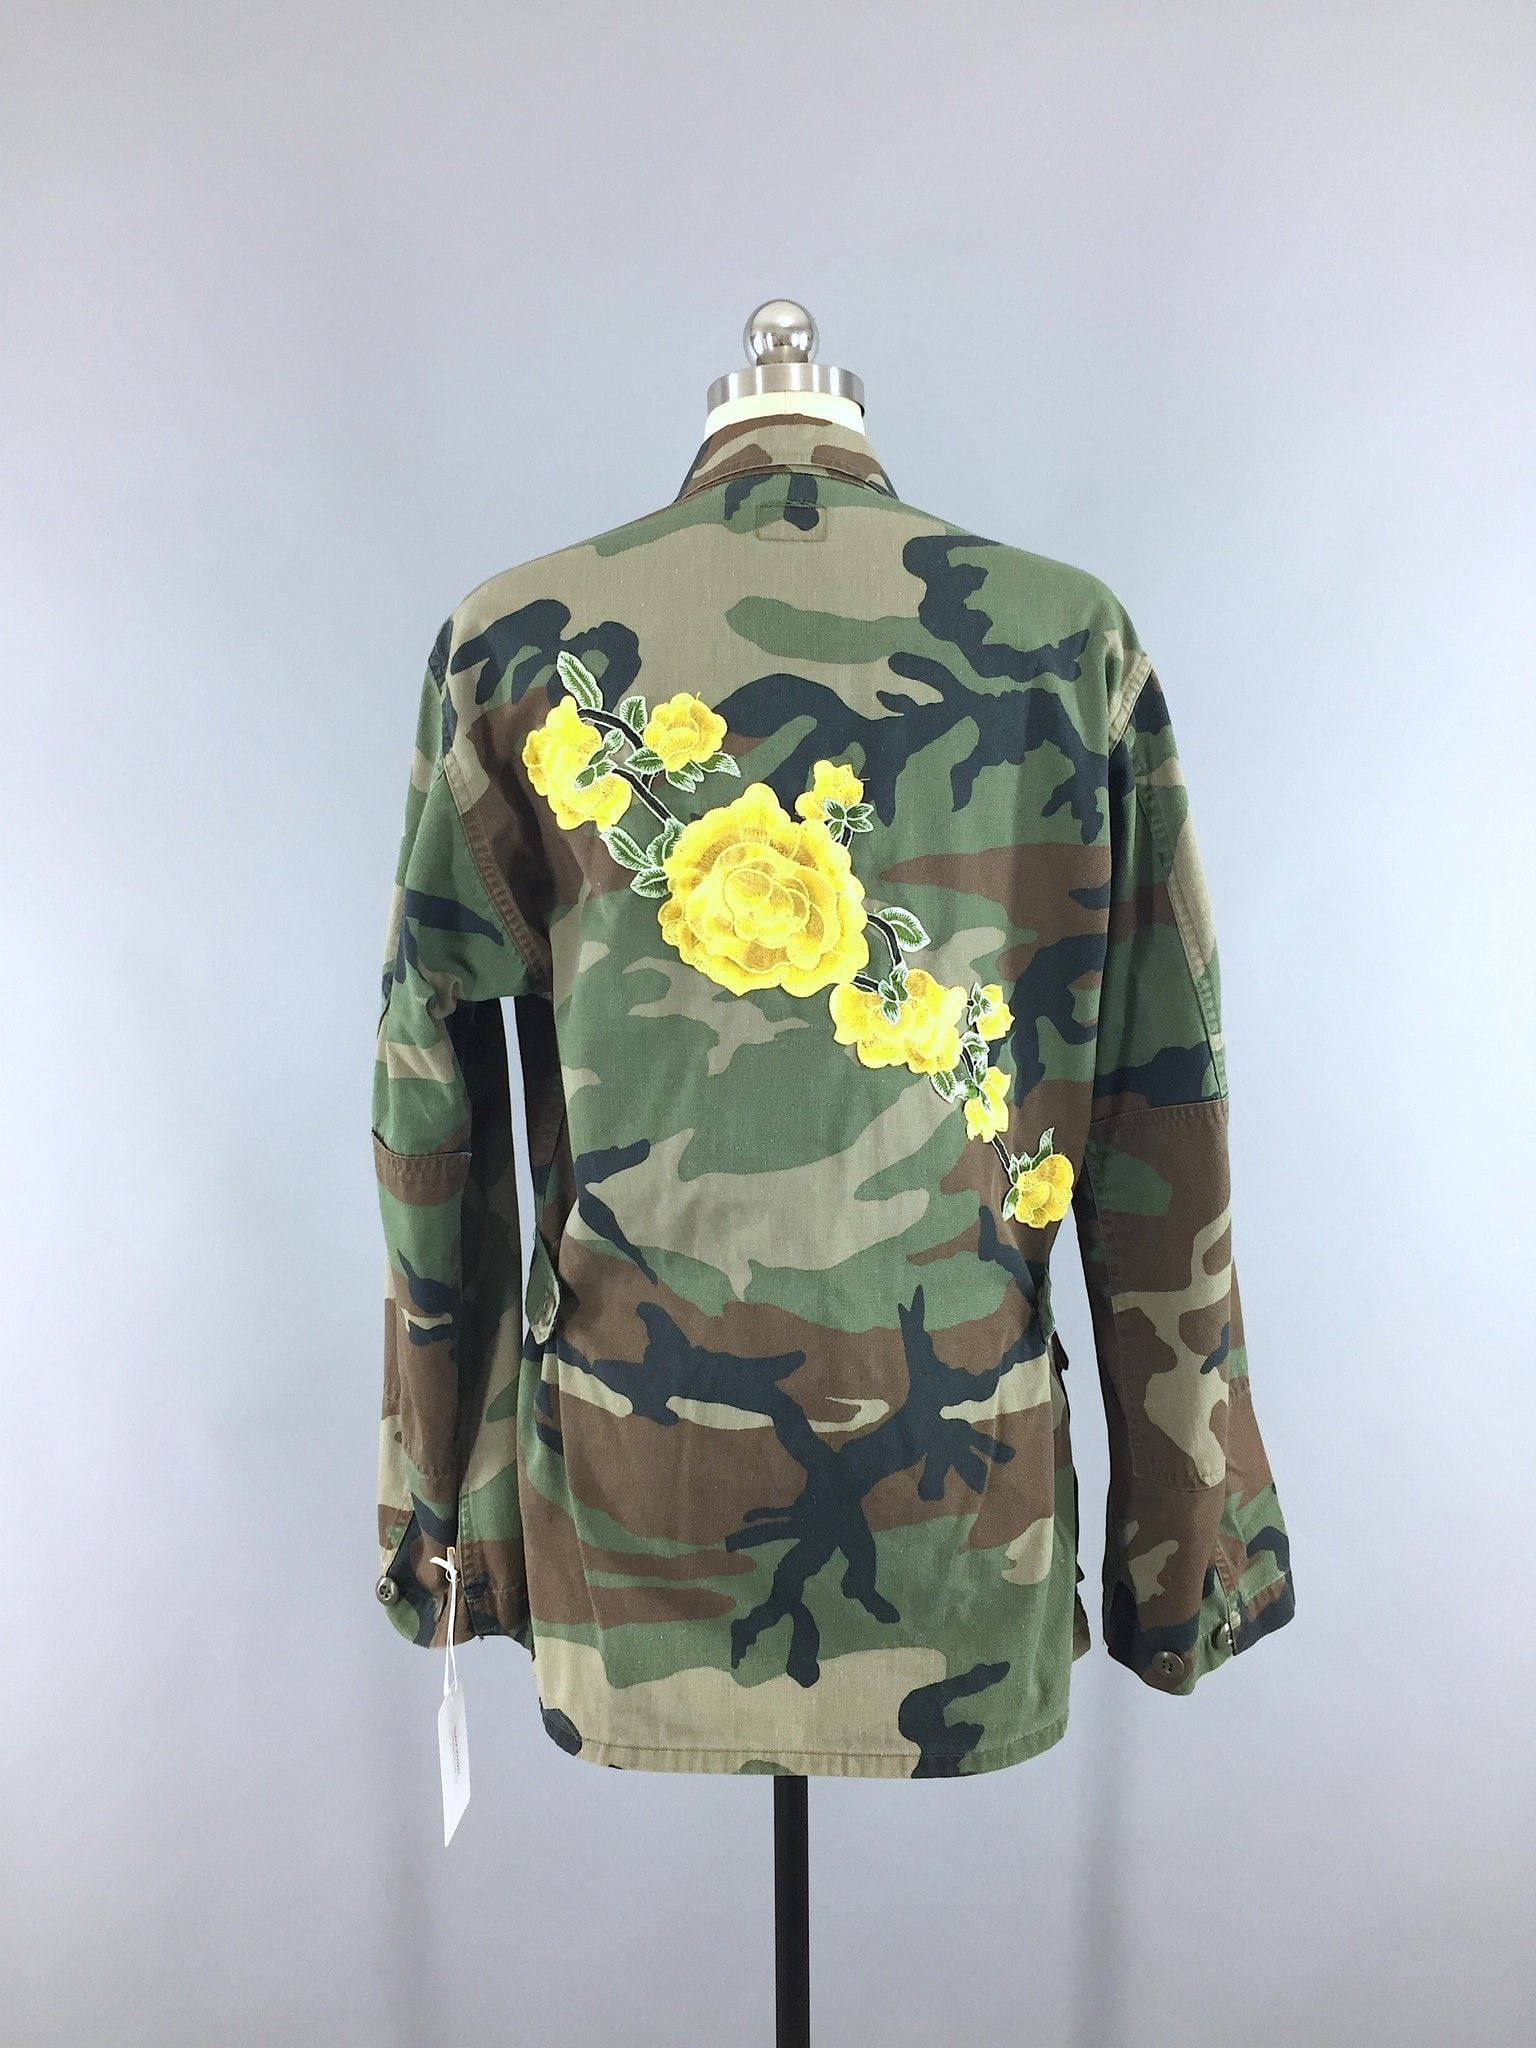 f05e54fdc4e Vintage US Army Embroidered Camouflage Jacket   Yellow Floral ...